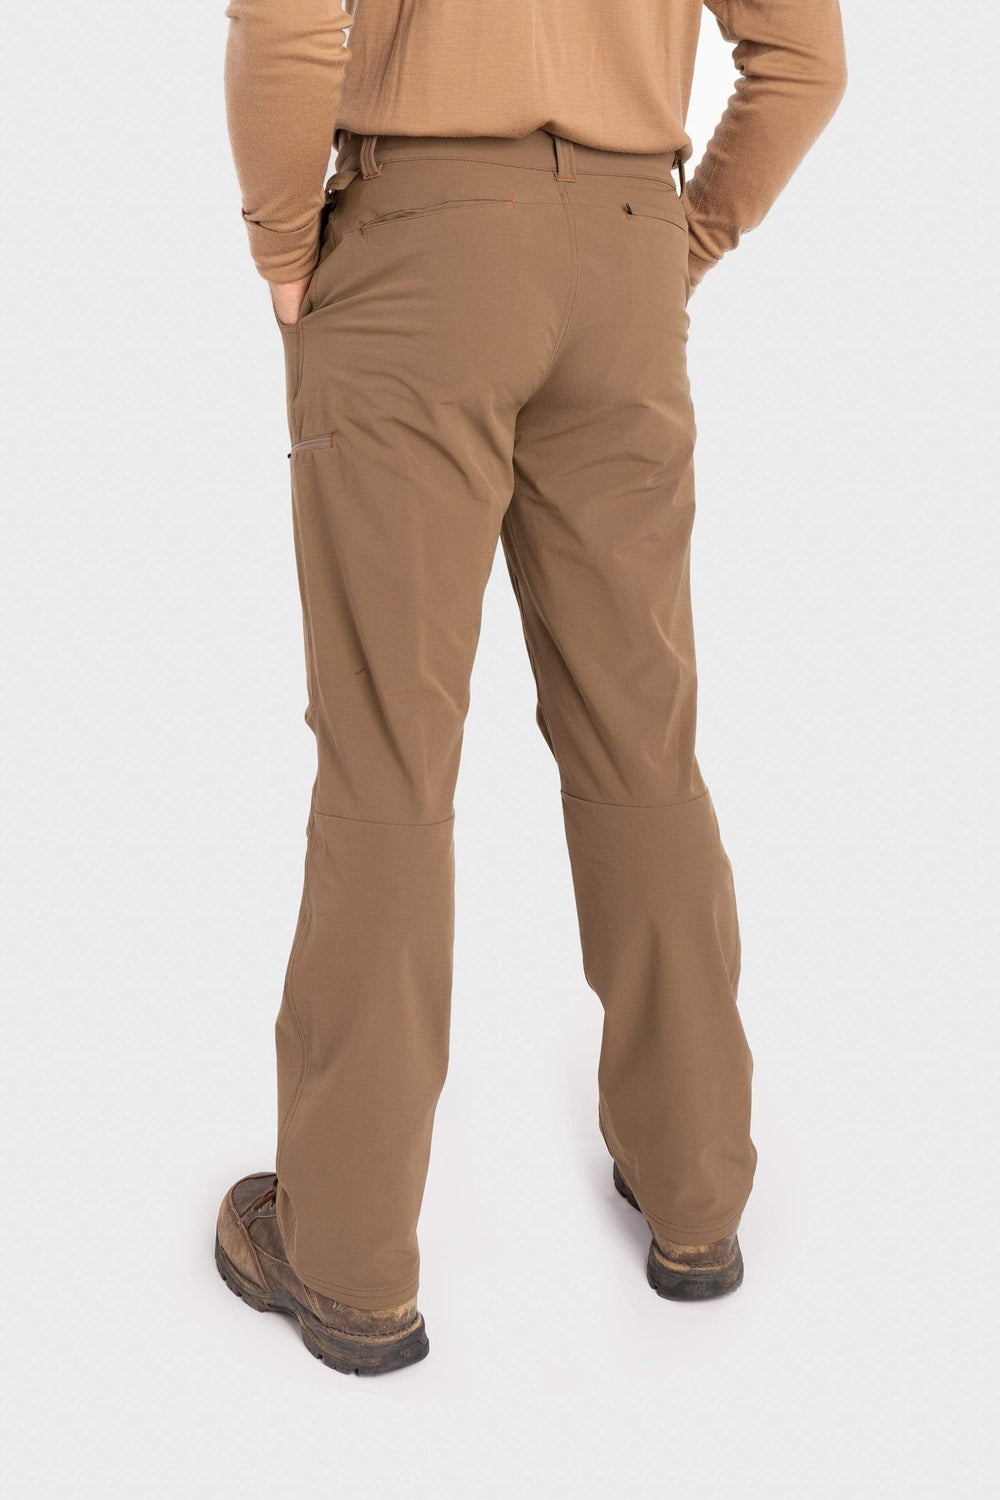 Vantage Pants - Pin Oak